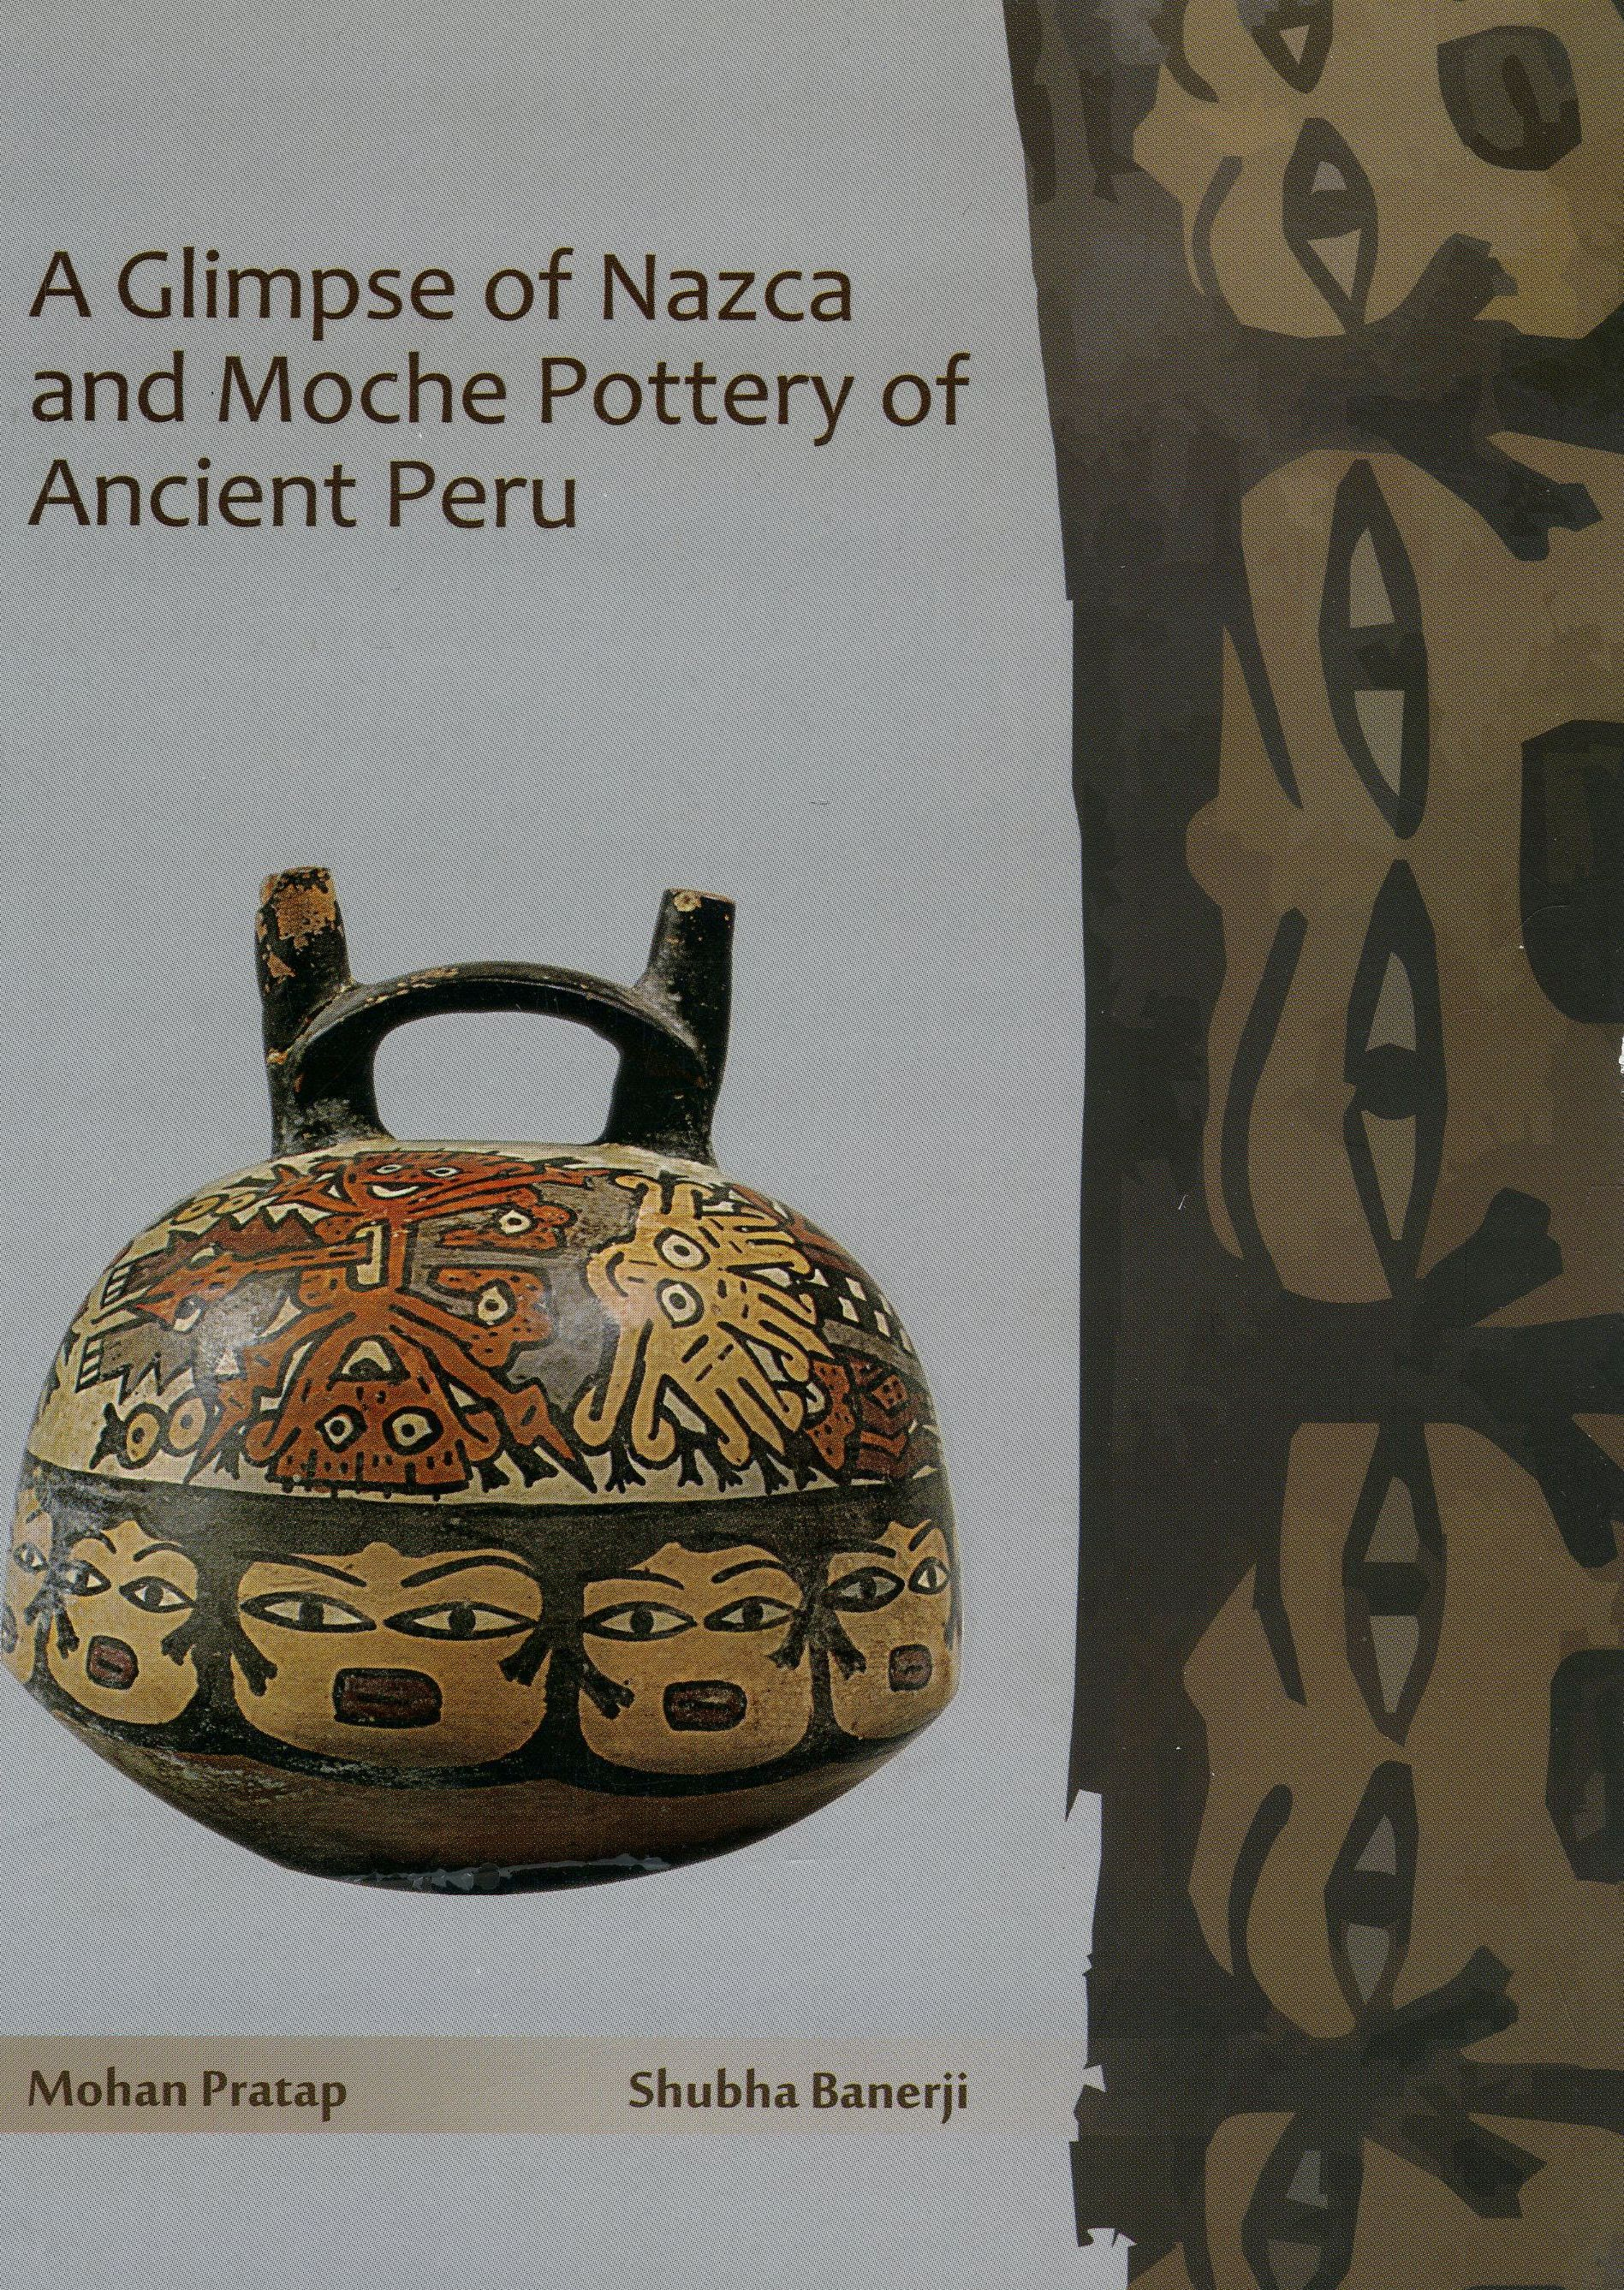 Figure 5 publication on Nazca pottery in the National Museum, Delhi